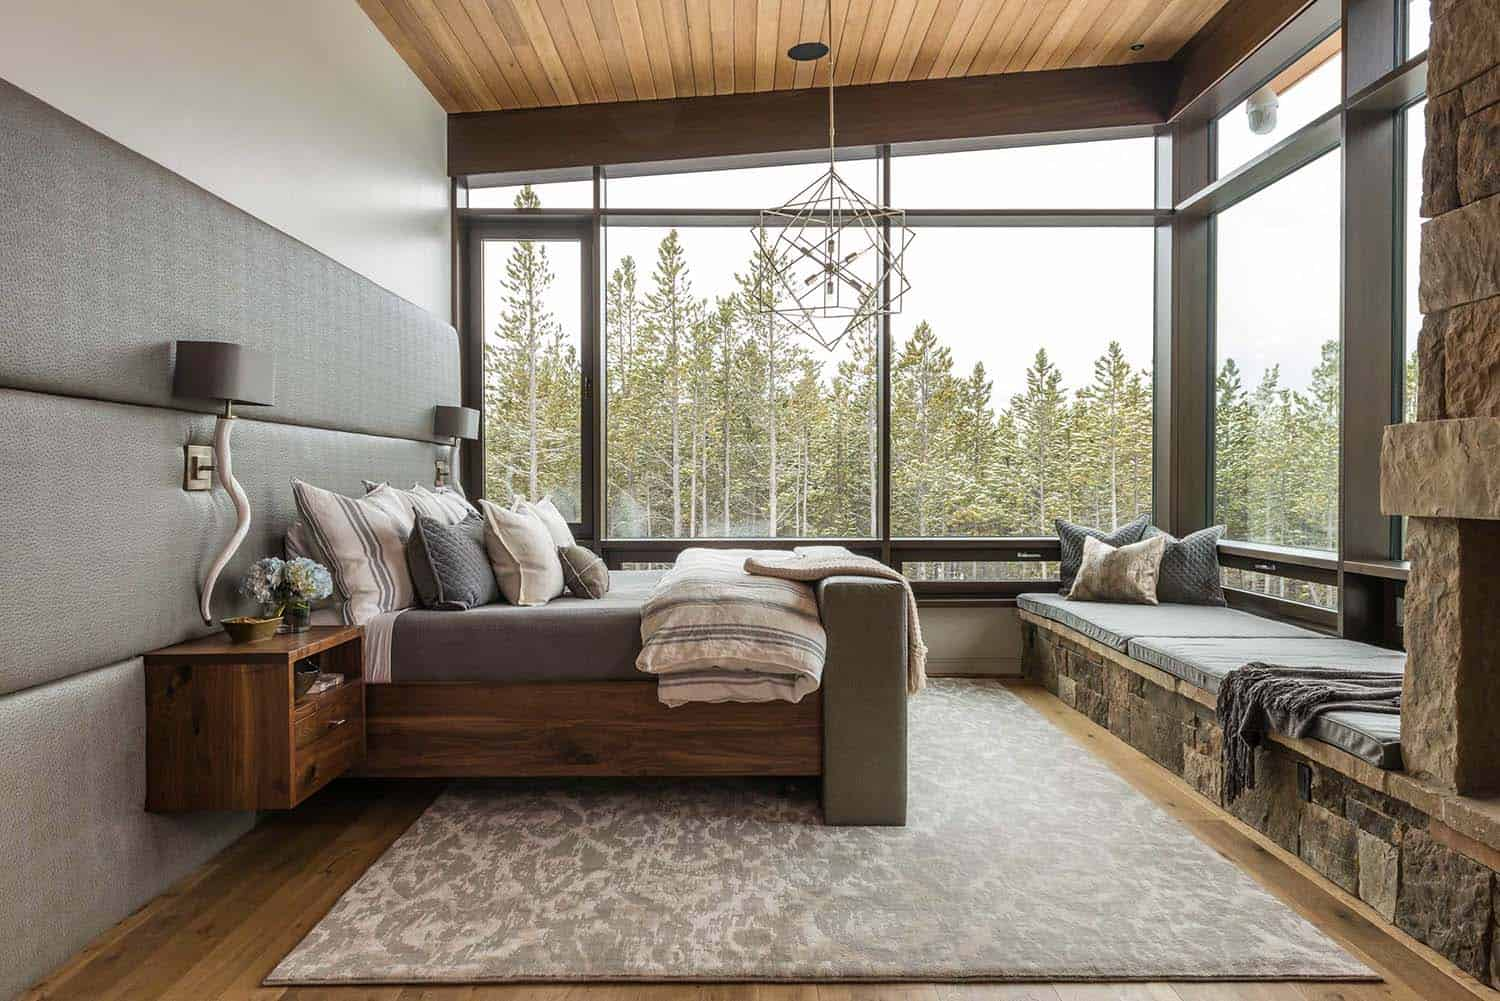 Contemporary Mountain Residence-Reid Smith Architects-12-1 Kindesign